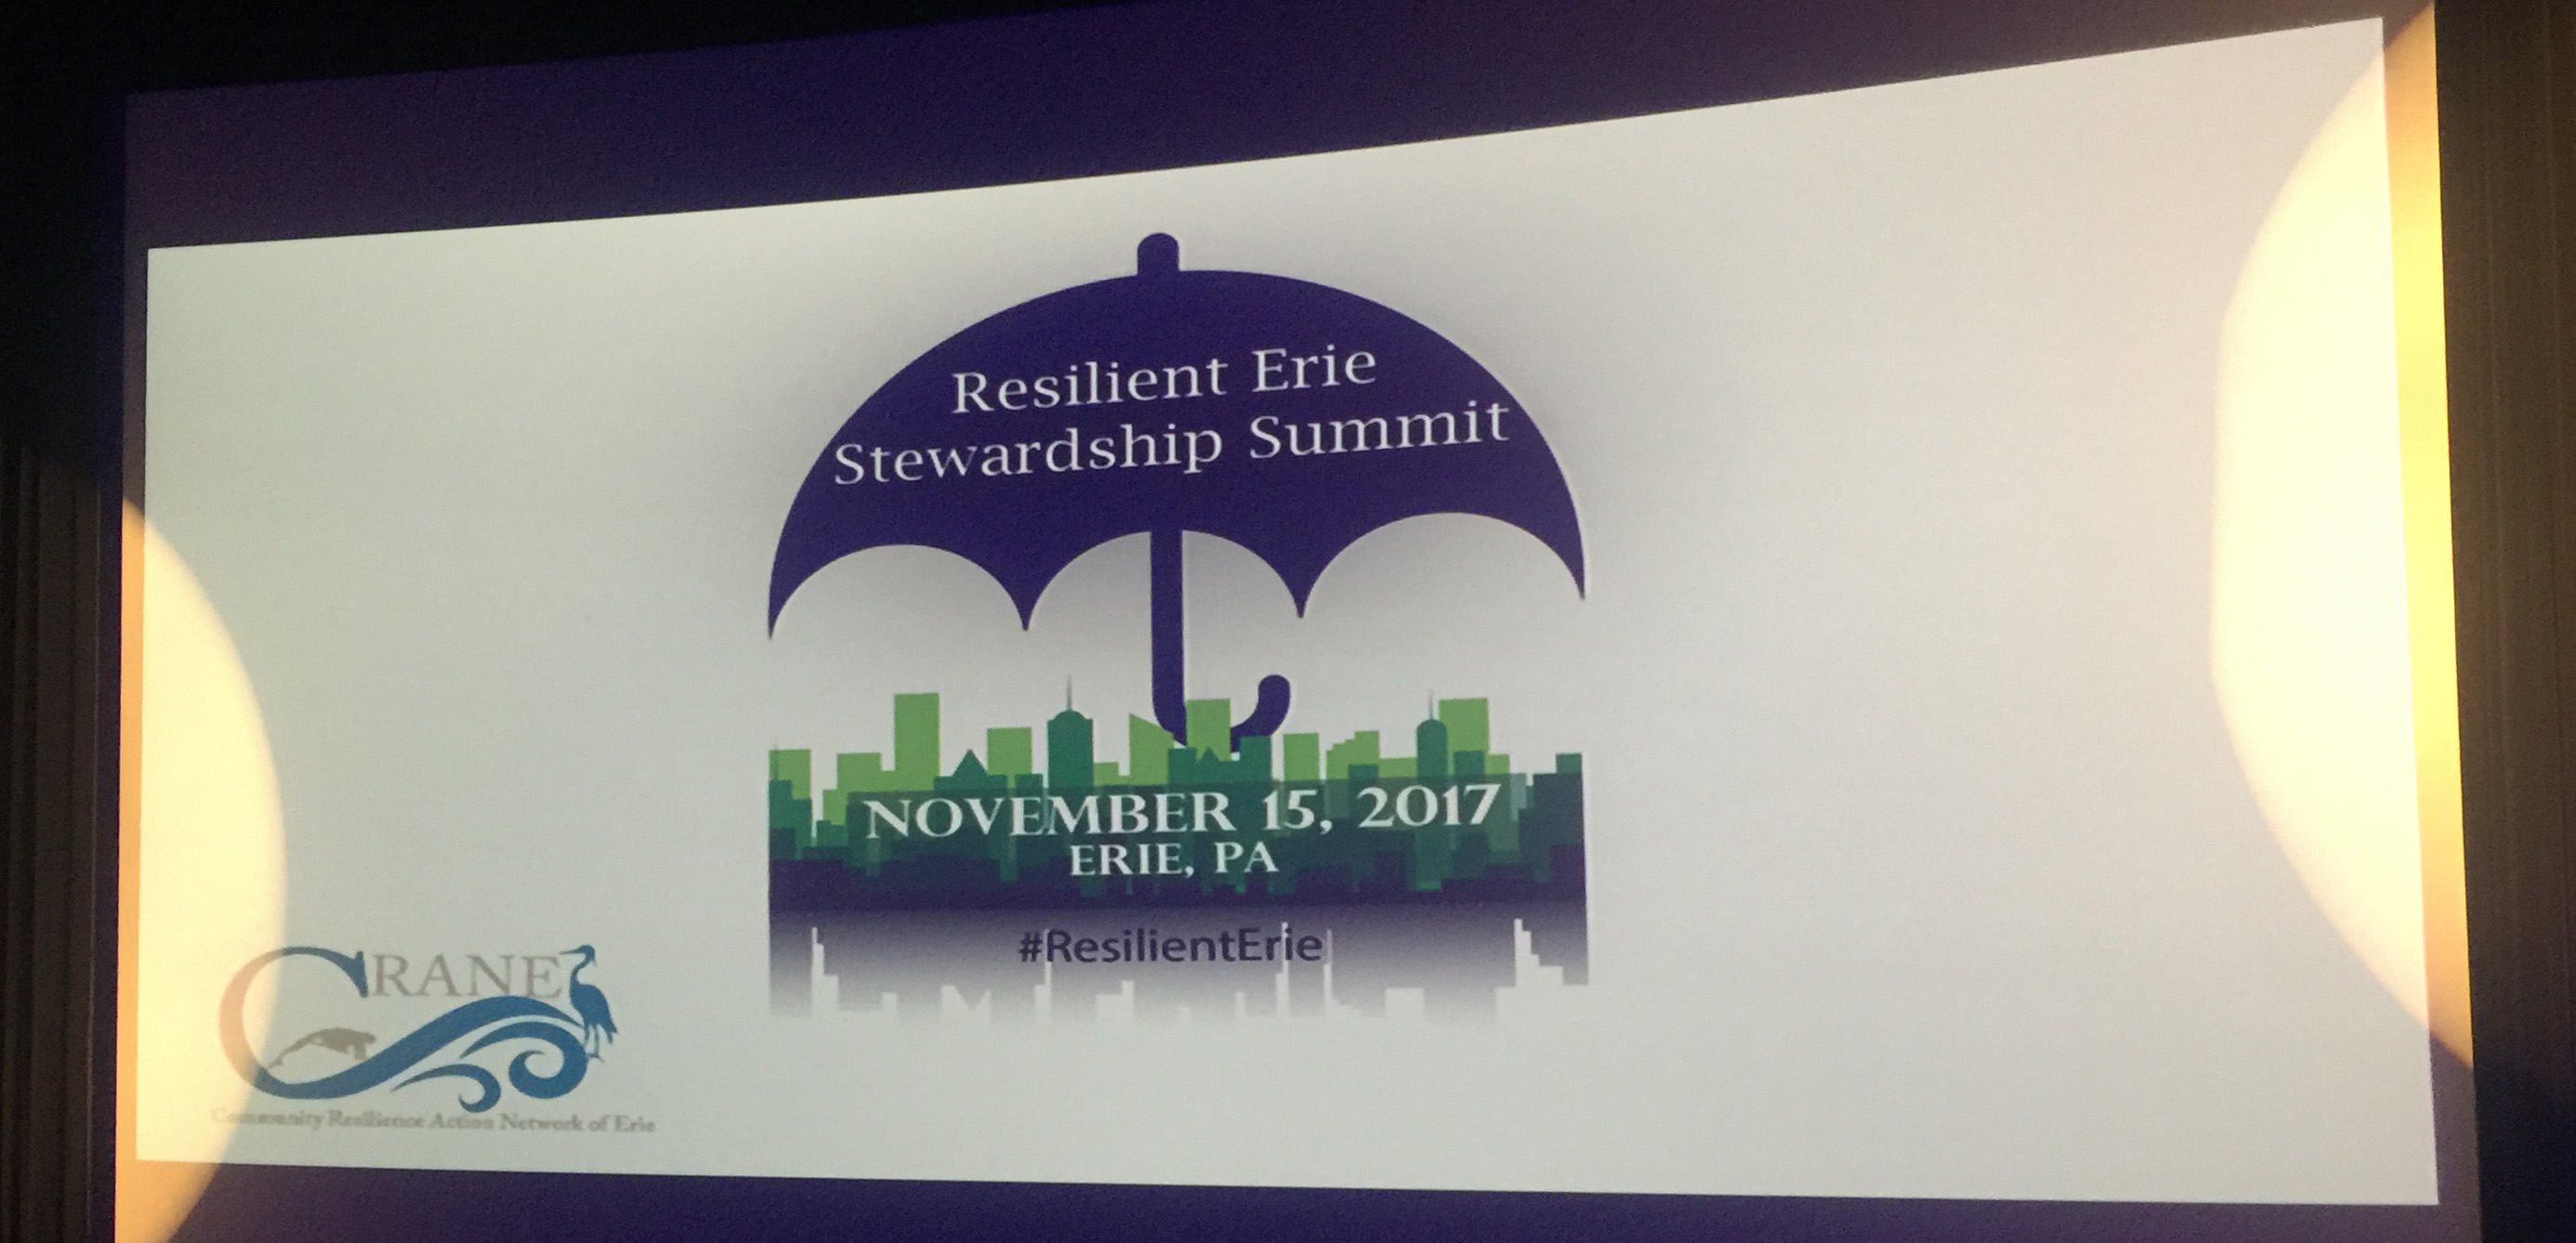 resilient erie stewardship summit graphic